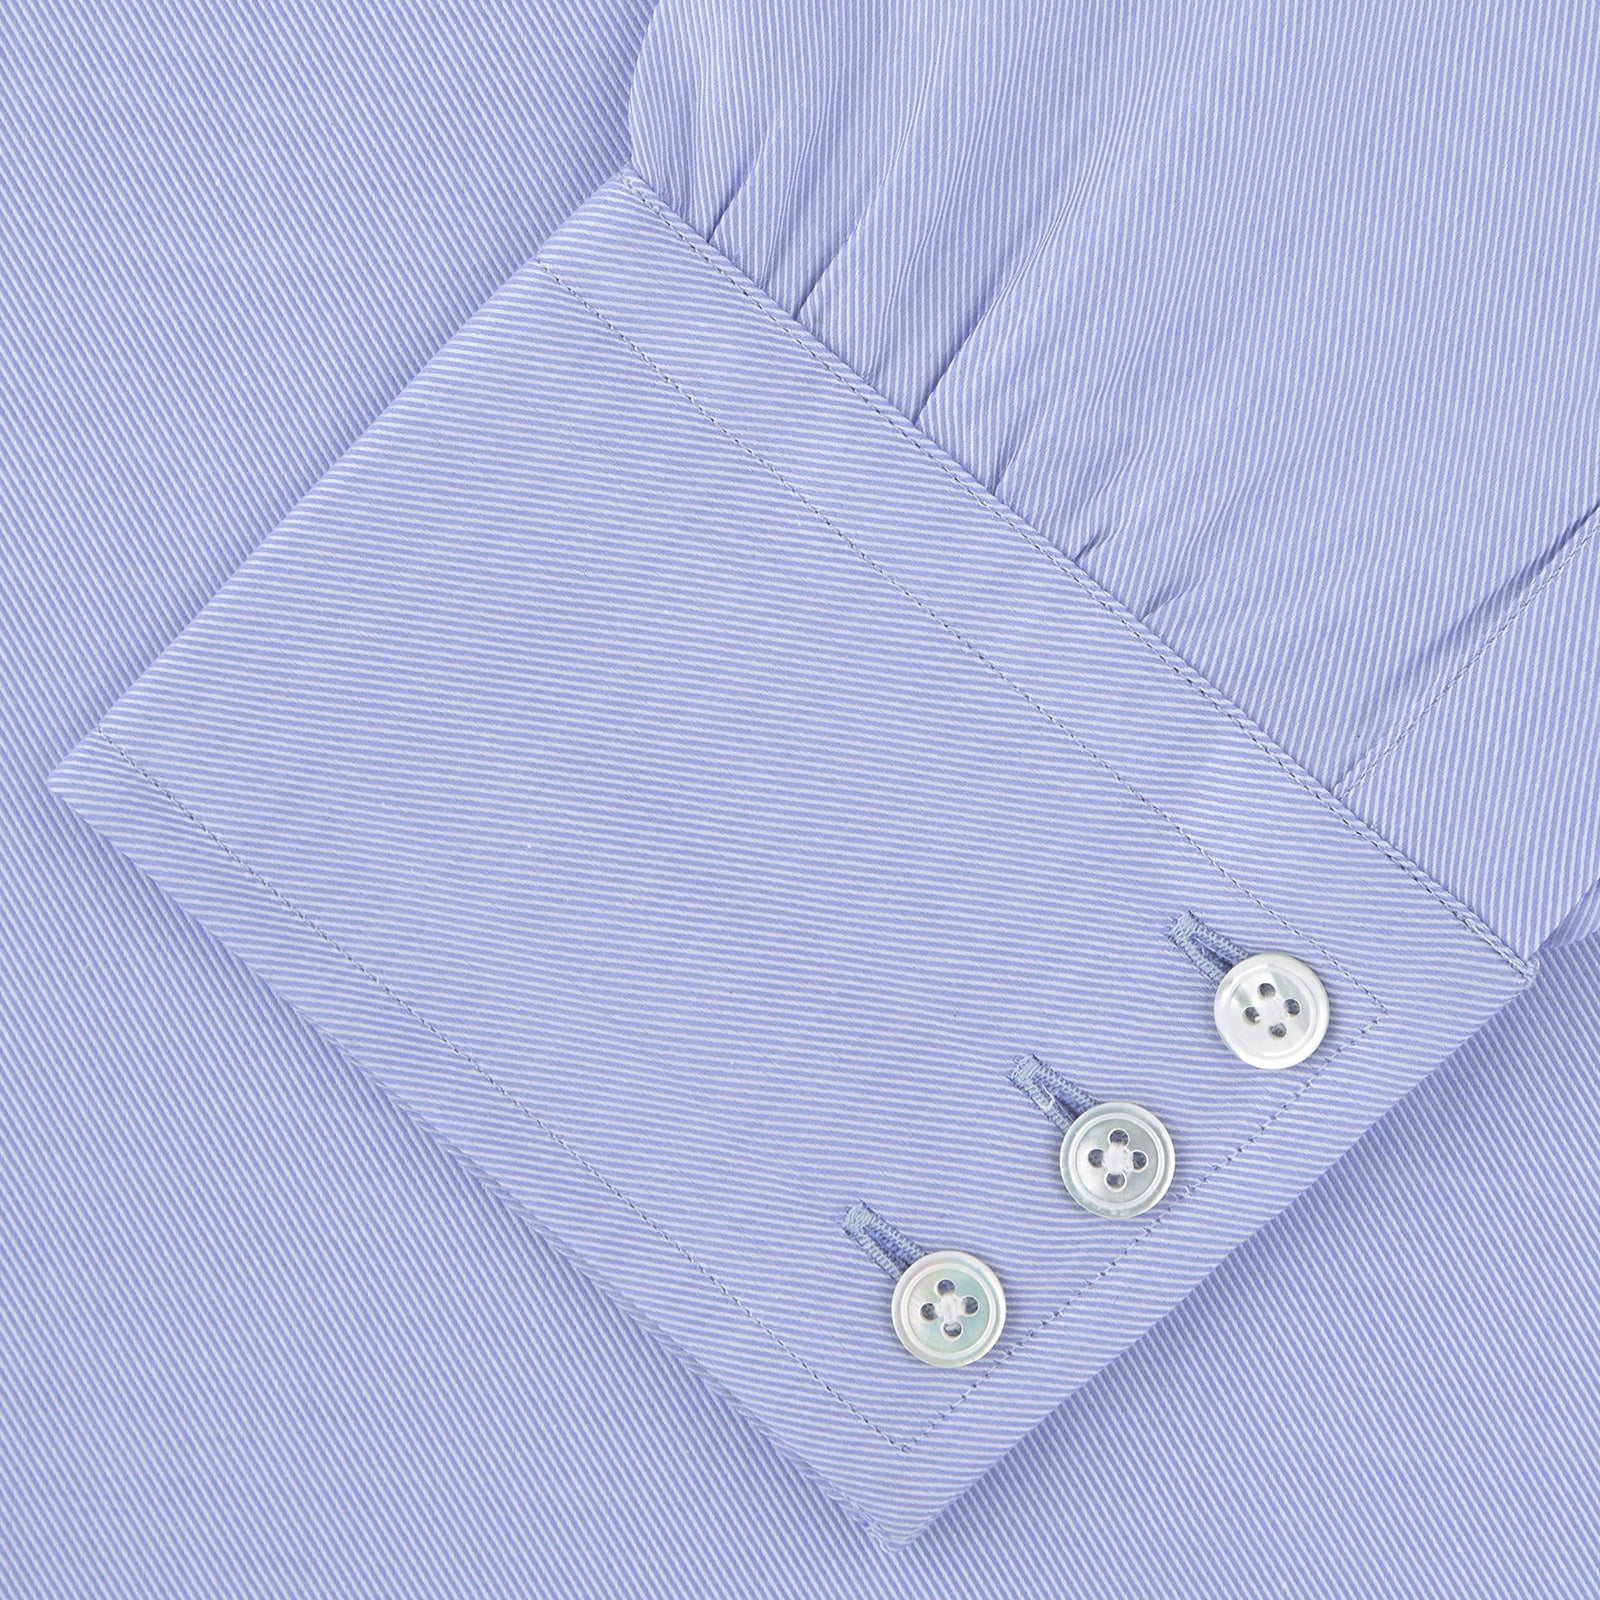 Blue Sea Island Quality Cotton Twill Shirt with T&A Collar and 3-Button Cuffs